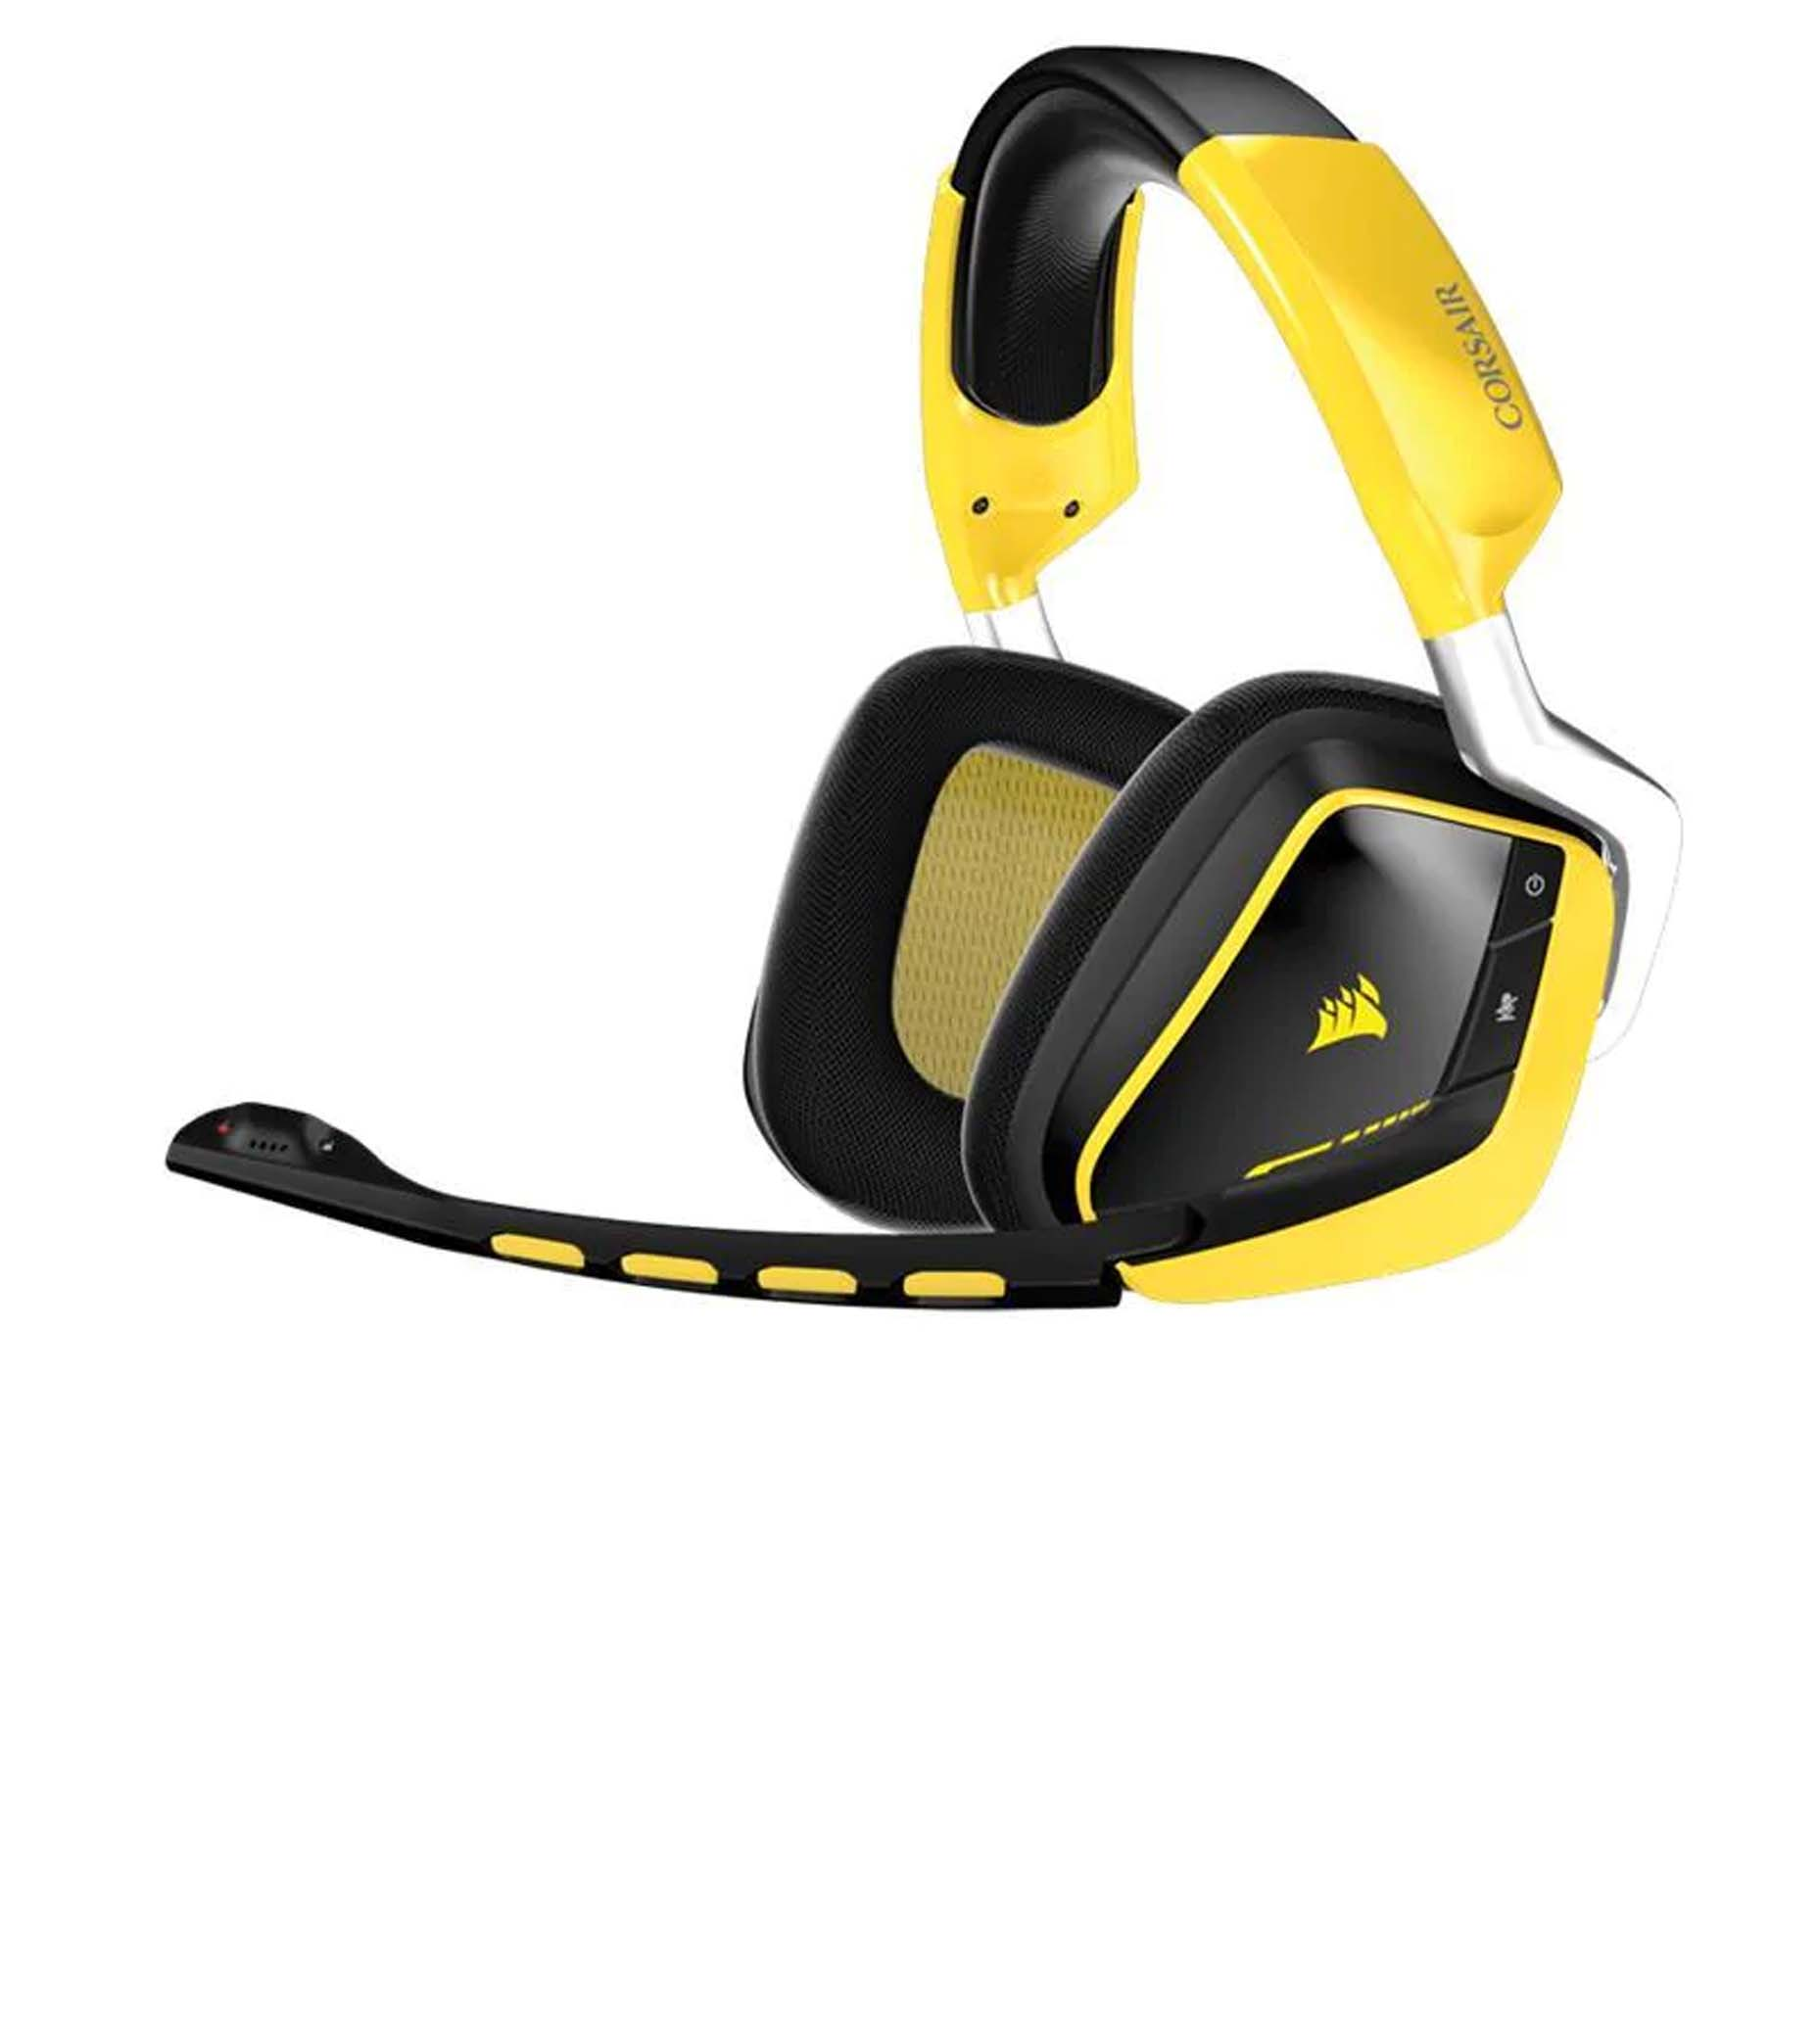 Harga Jual Corsair CA-9011150-AP VOID PRO RGB Wireless SE Premium Gaming Headset with Dolby Headphone 7-1-Yellow (AP)_1